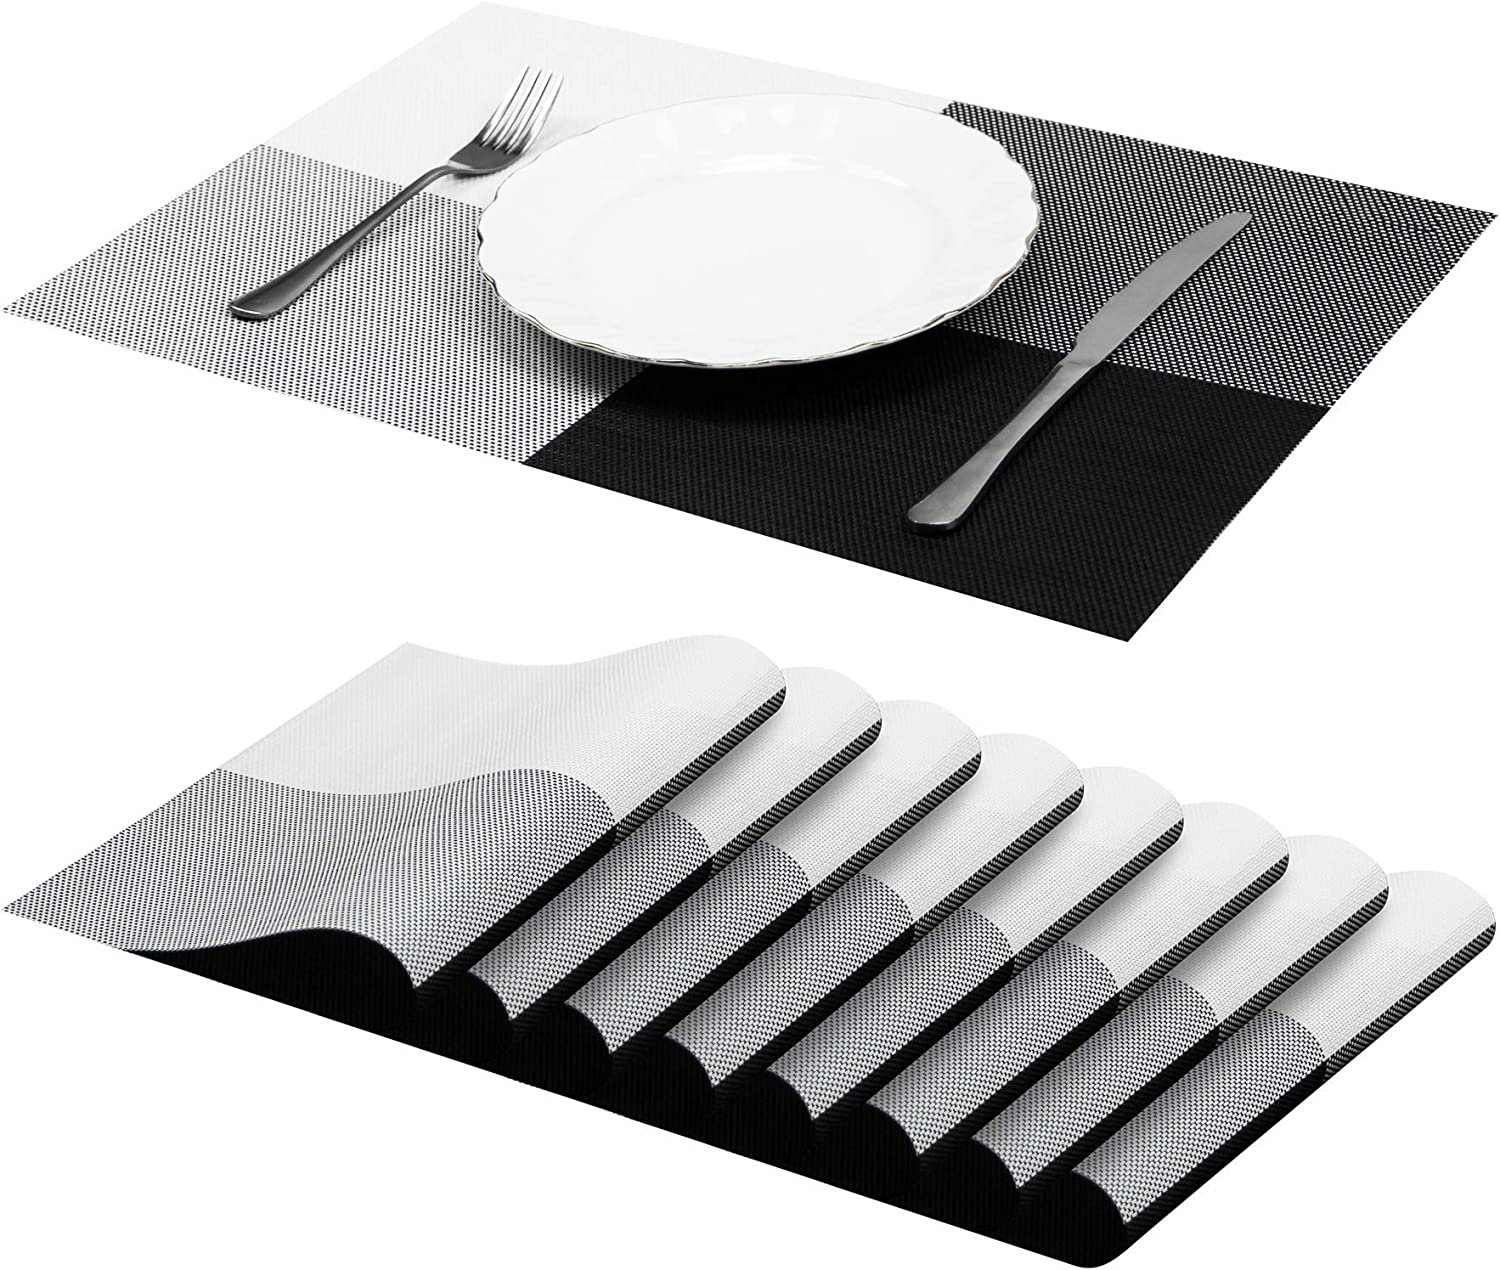 Jujin Placemats Set of 8 Non-Slip Washable PVC Heat Resistant Table Mats for Dining Table Gray